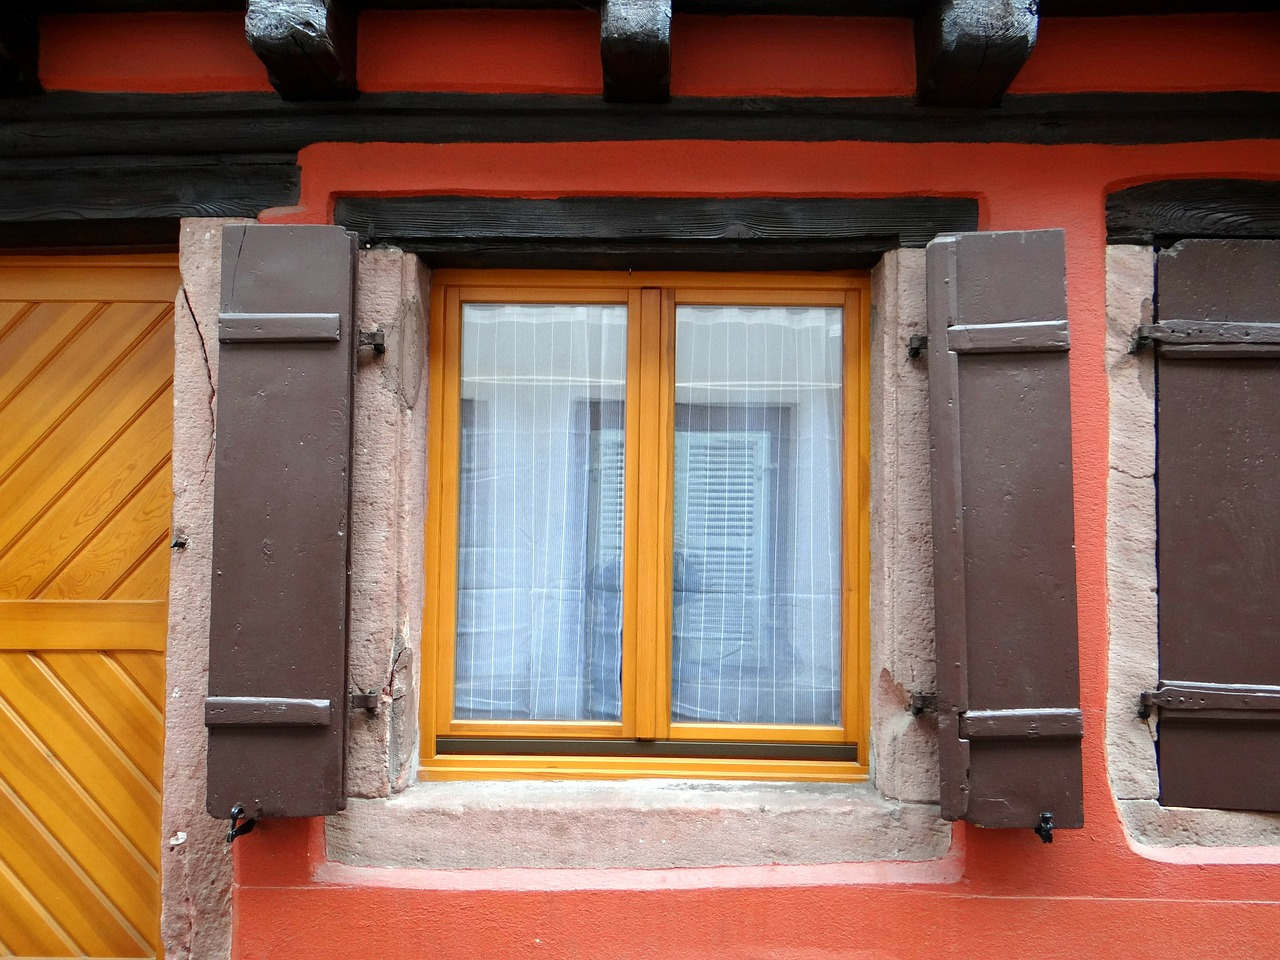 window,shutters,mirroring,truss,picturesque,individual,red,yellow,brown,fachwerkhaus,old town,historically,home,alsace,colmar,france,free pictures, free photos, free images, royalty free, free illustrations, public domain